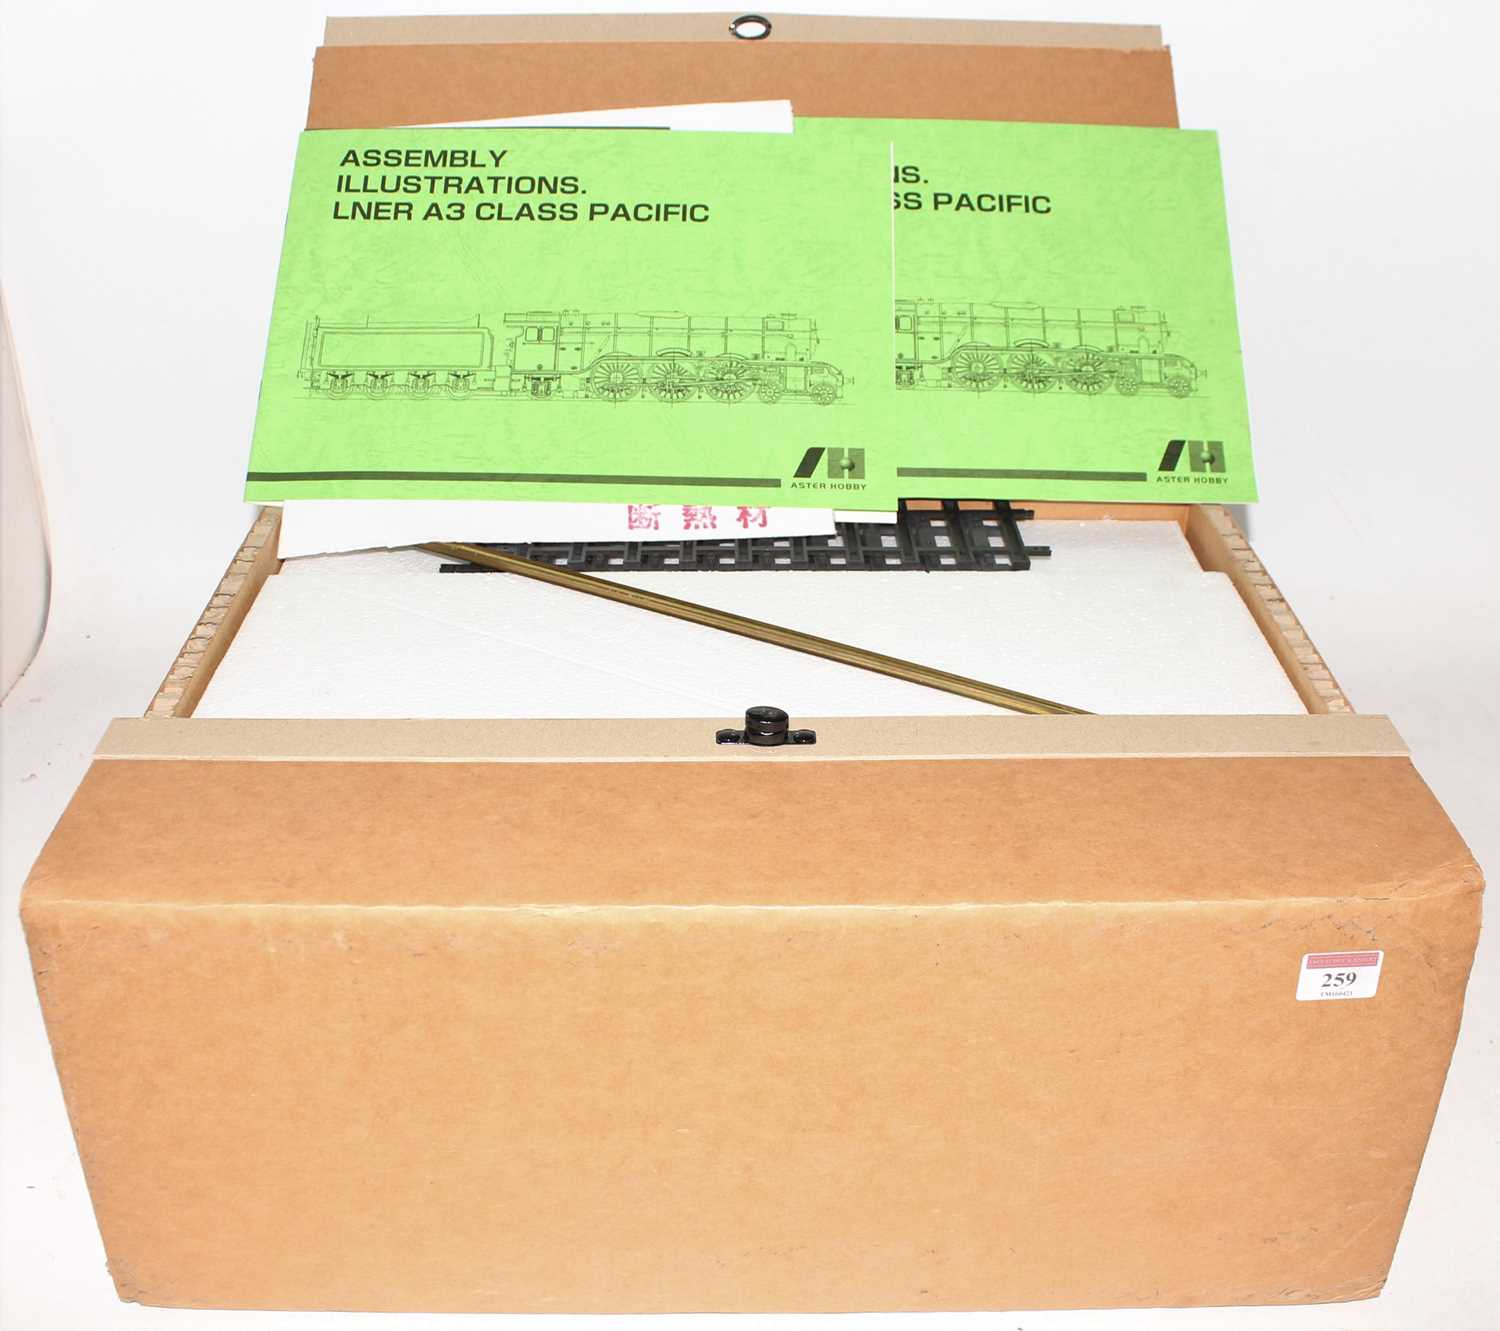 Aster Gauge 1 Live Steam Locomotive Kit for a LNER A3 Pacific Class Locomotive and Tender, kit form, - Image 2 of 2